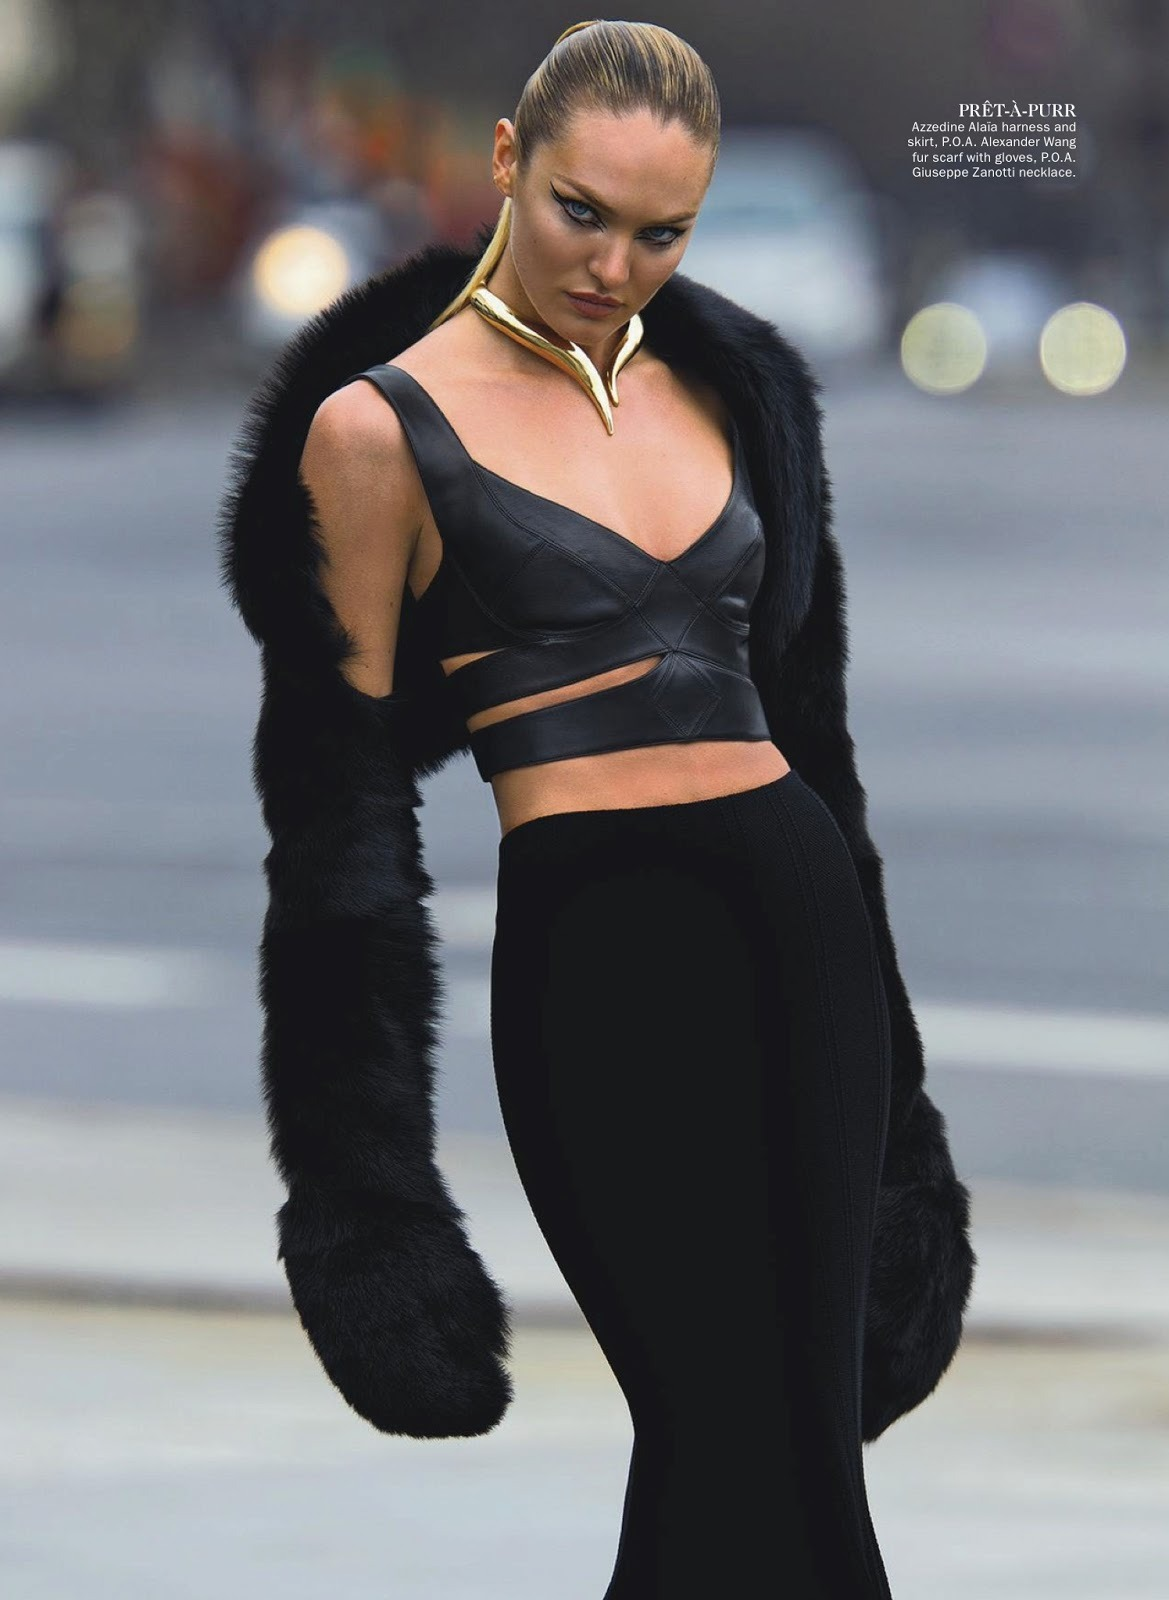 imgmodels:    Candice Swanepoel in Wild Cat by Hans Feurer for Vogue Australia June 2013 Link to full set